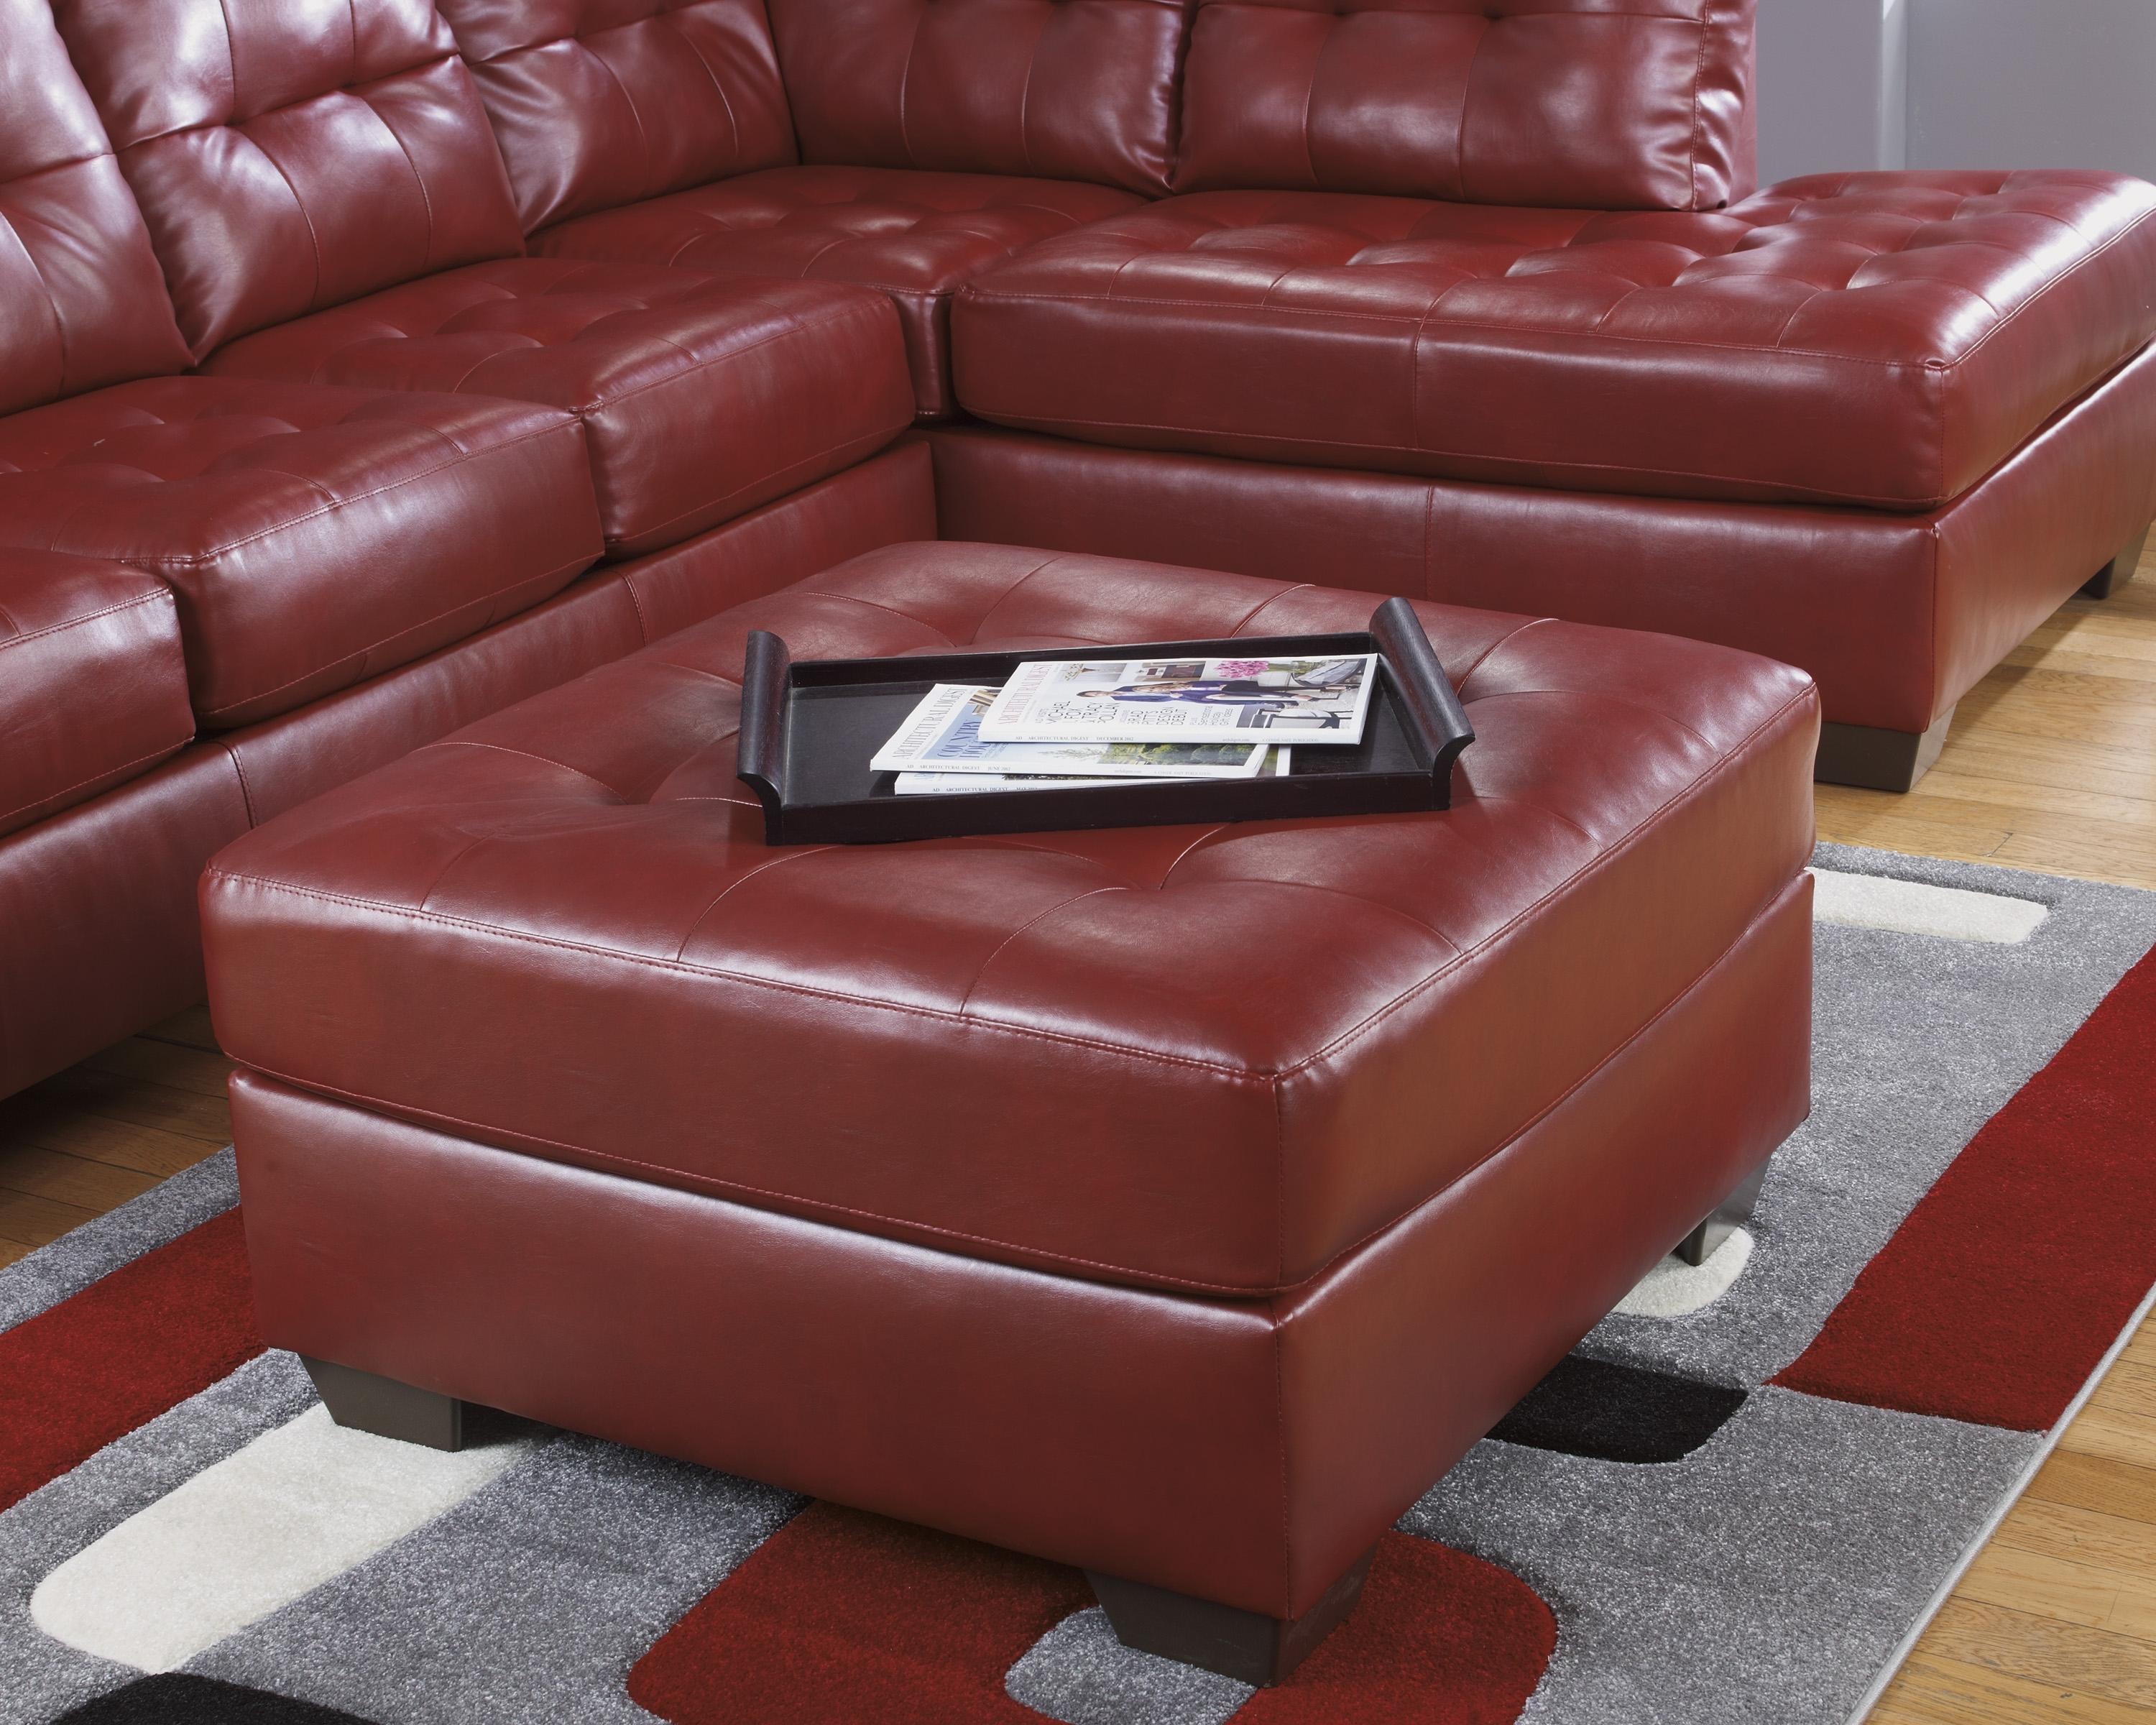 Ashley Furniture Leather Sectionals, Ashley Furniture Sofa Sleepers Within Red Sectional Sofas With Ottoman (View 10 of 15)